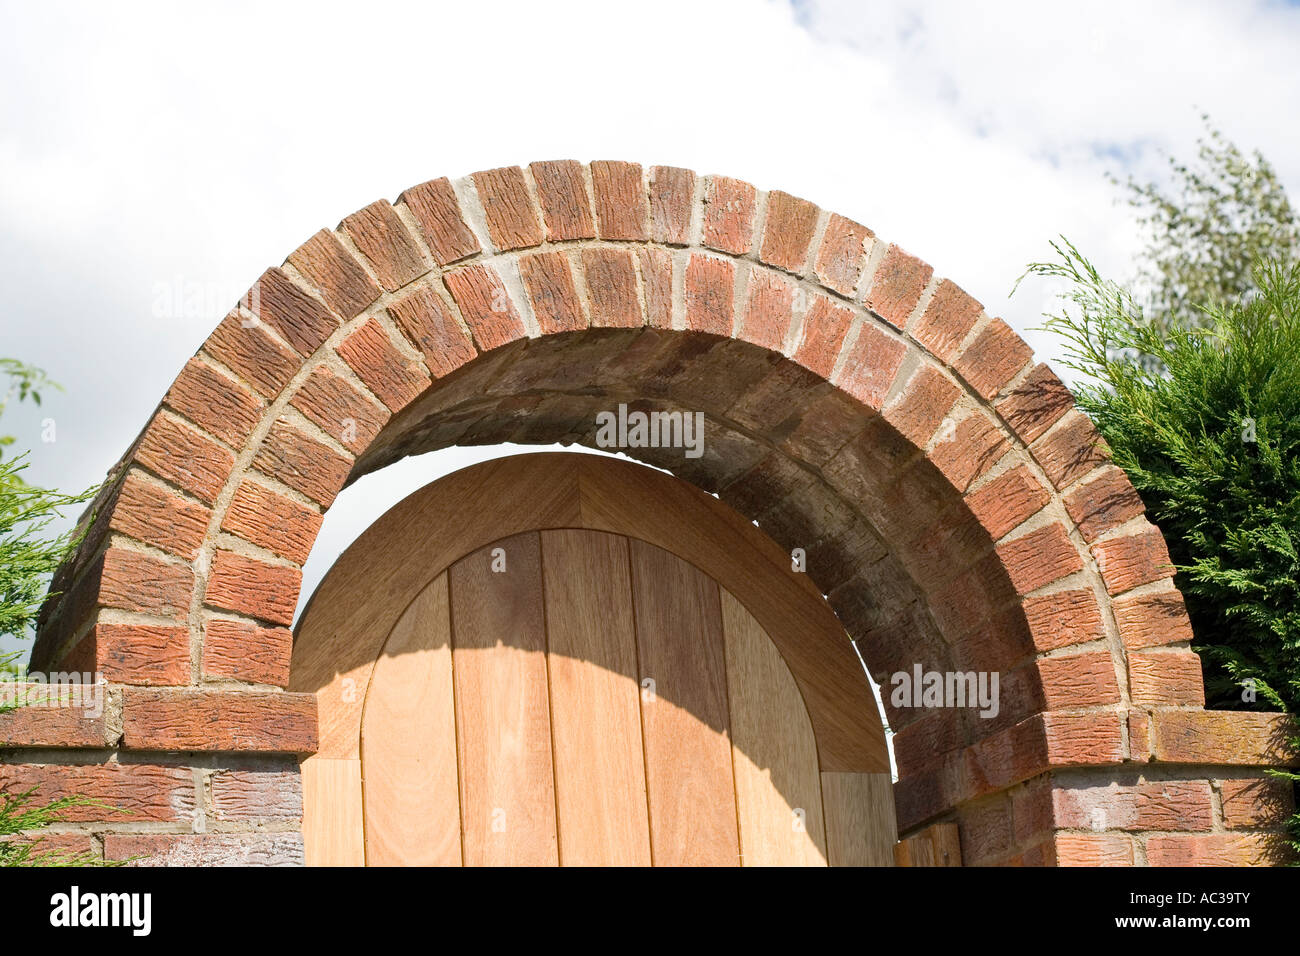 Curved Red Brick Arch Over Garden Gateway With Wooden Door